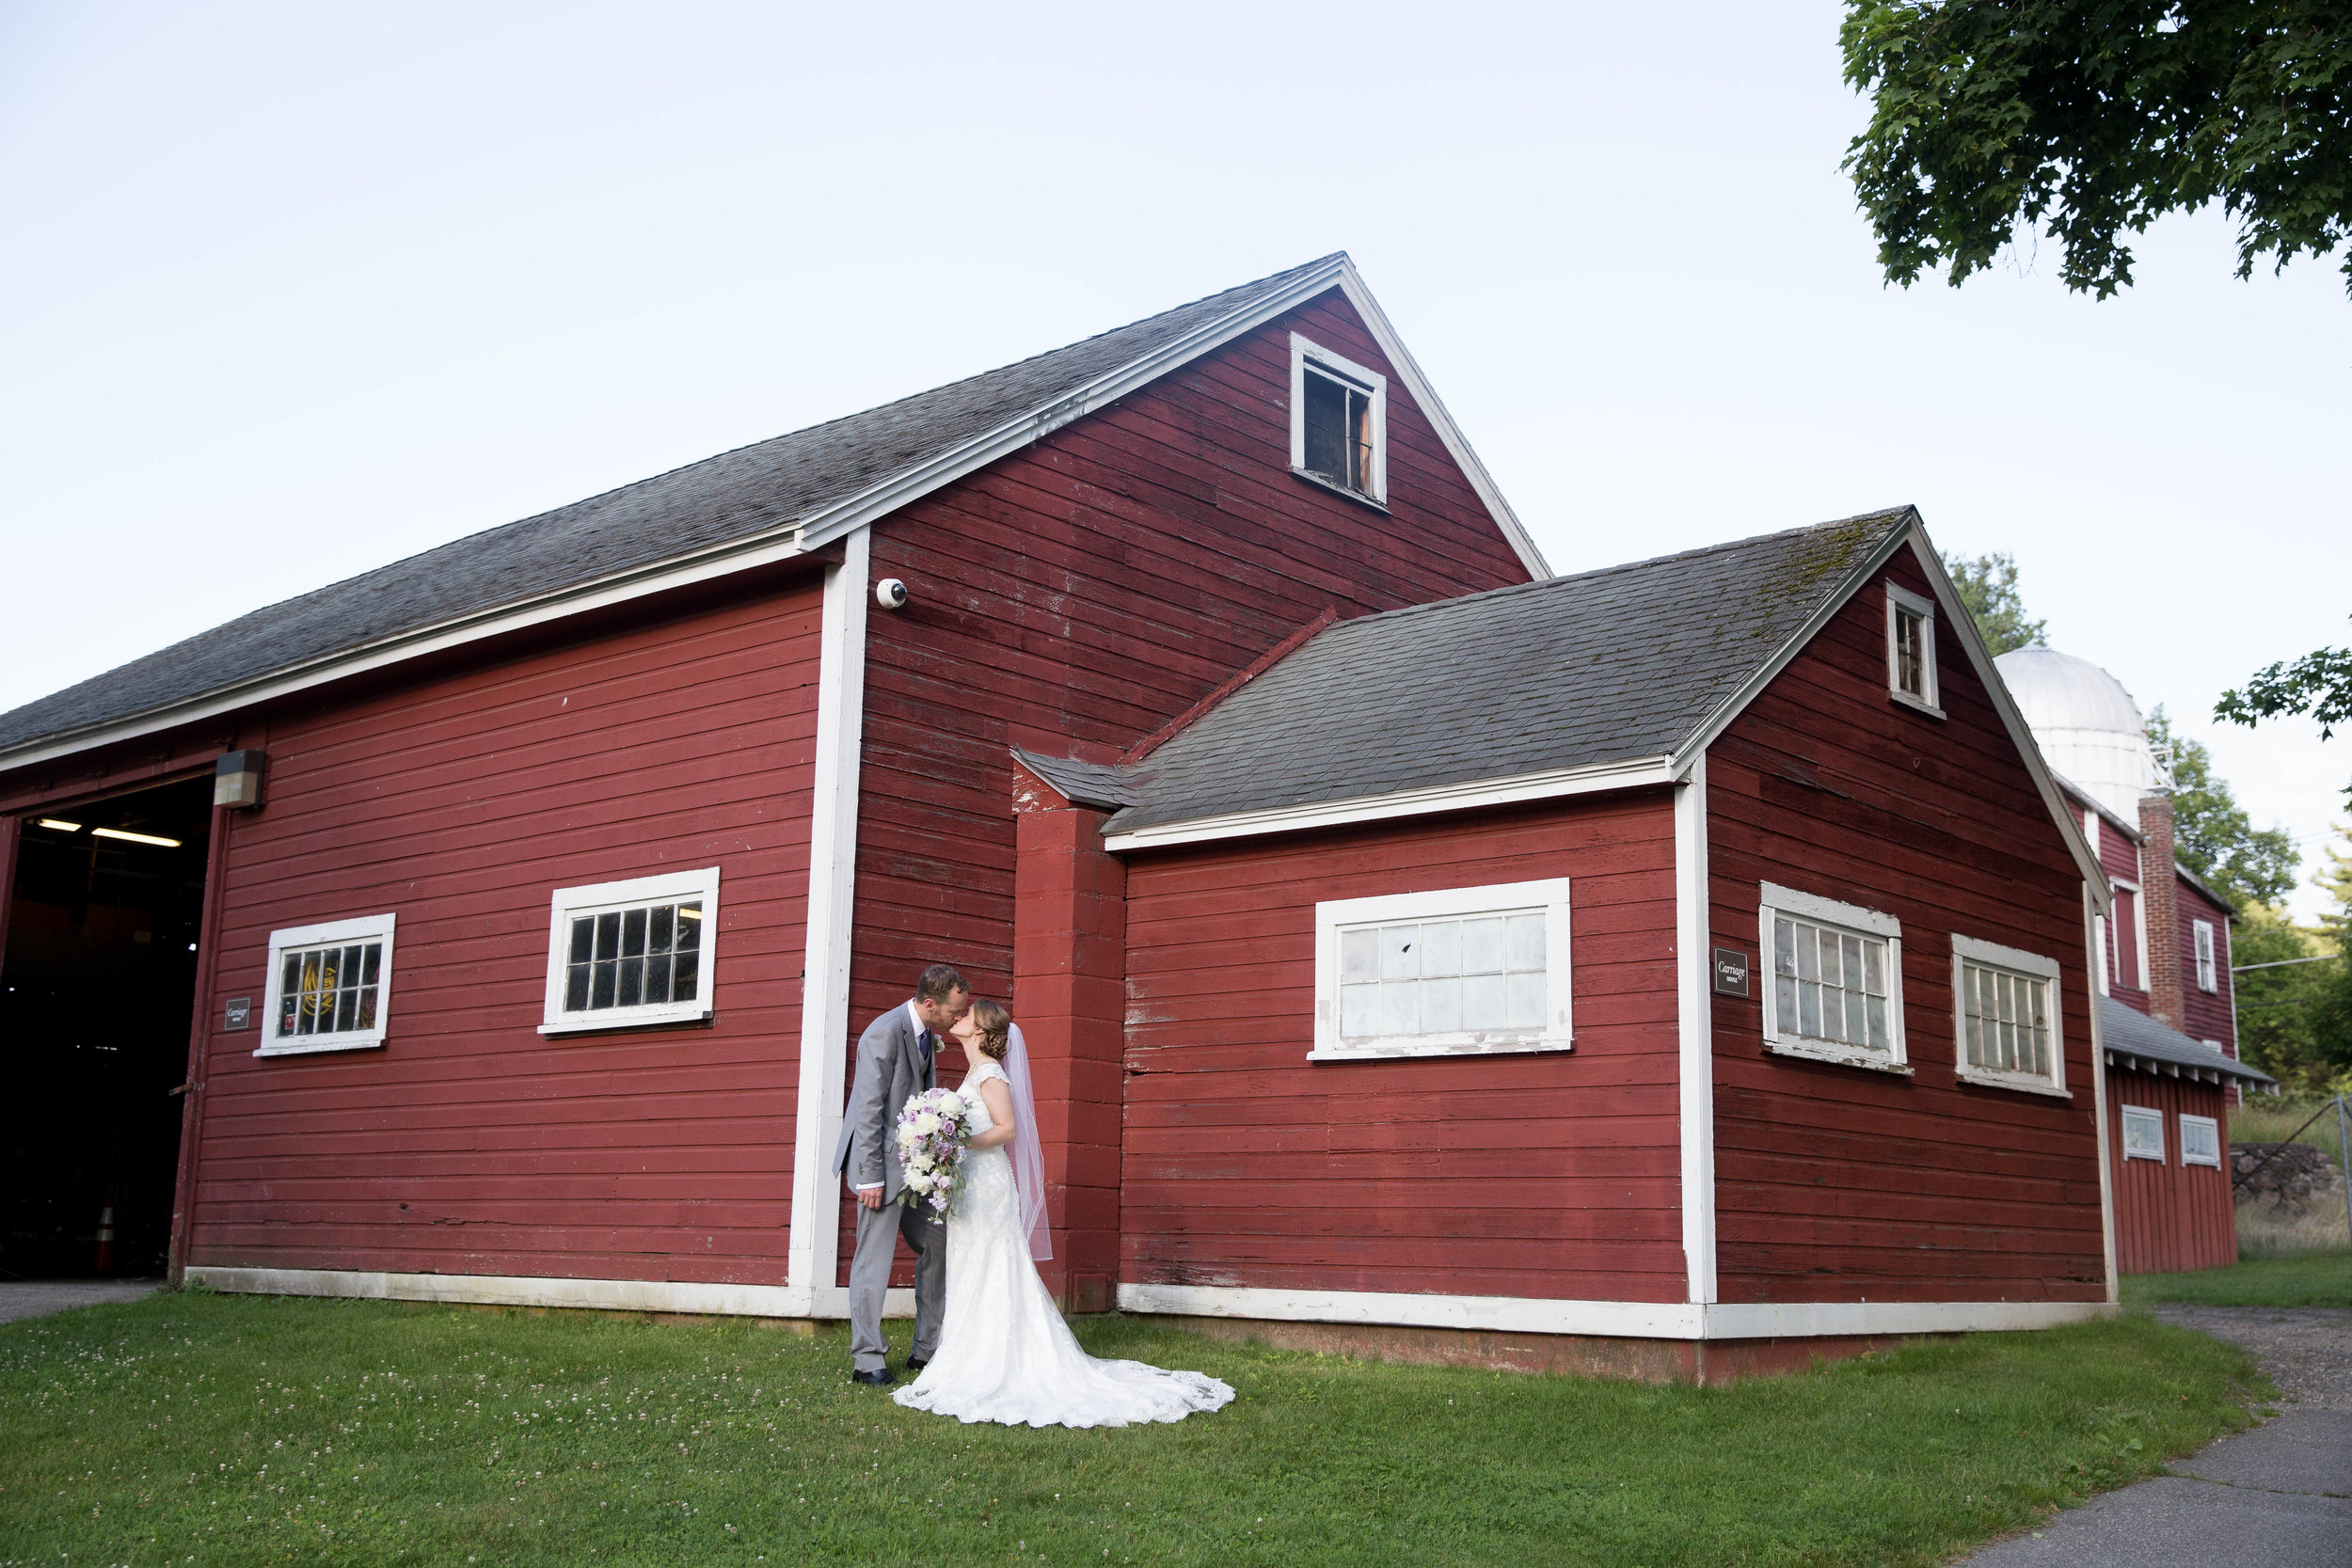 warrencenterwedding_0036.jpg